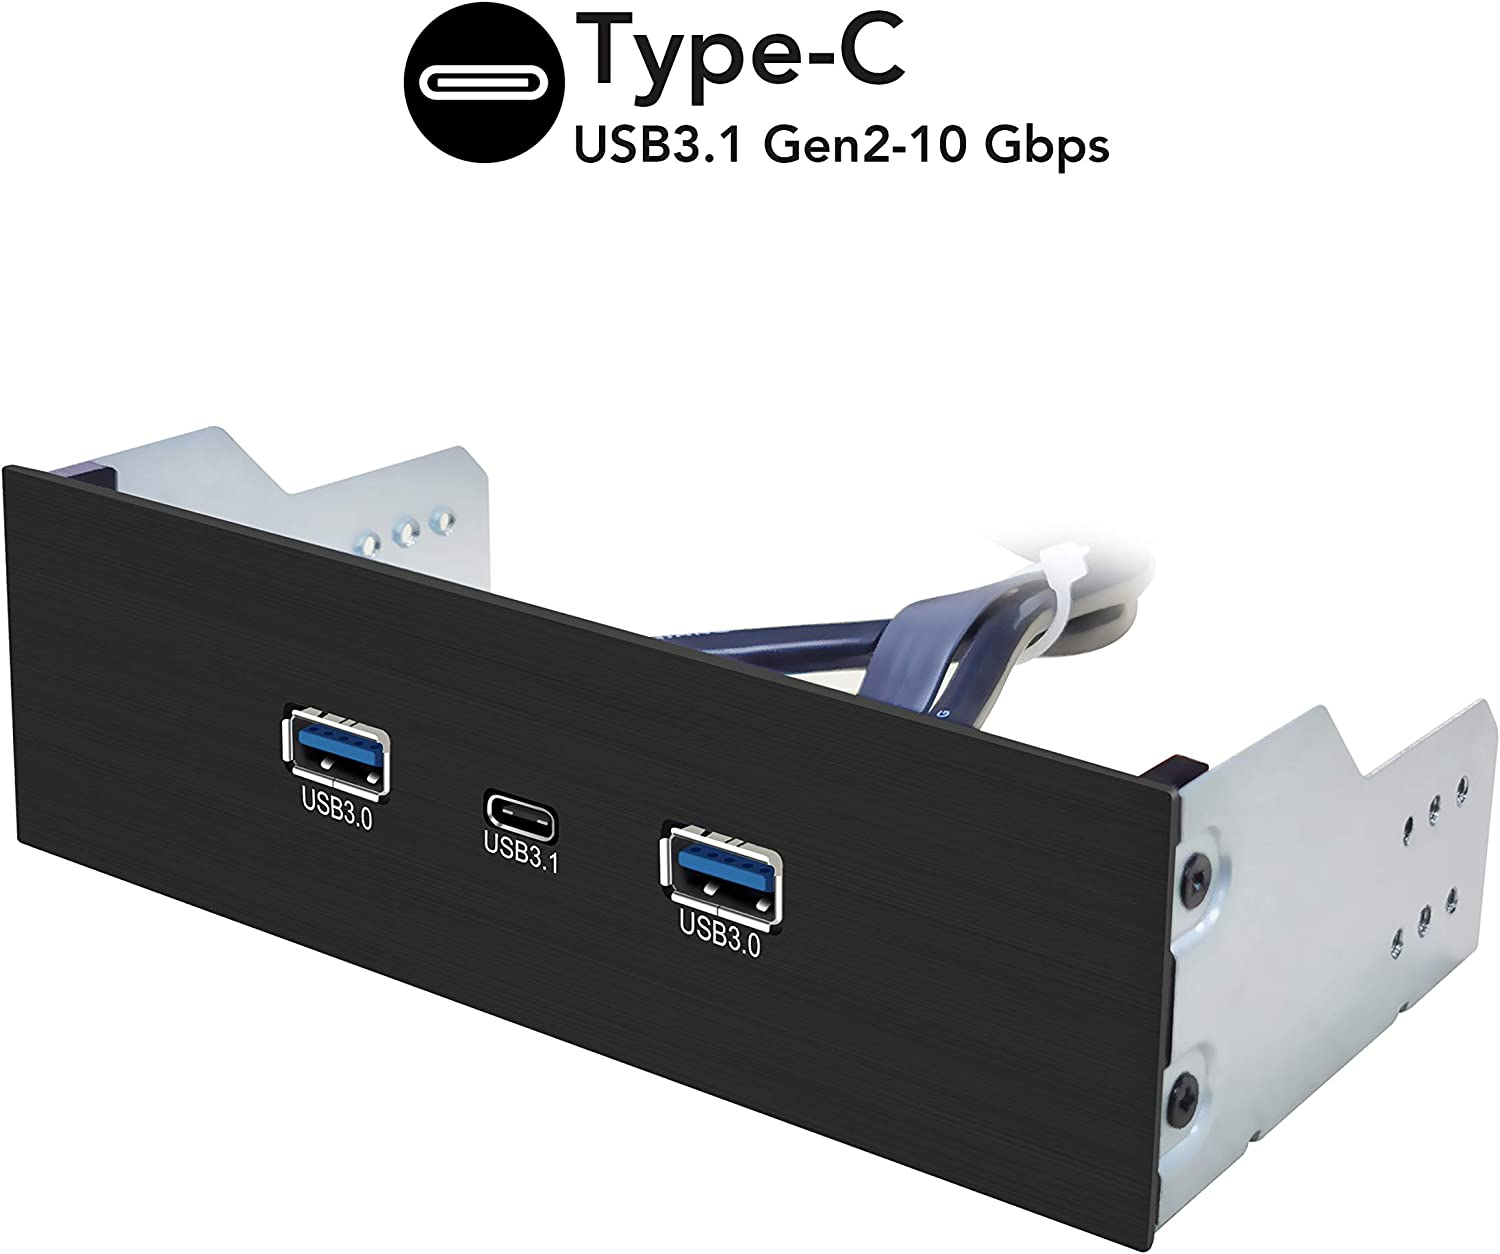 EZDIY-FAB 2-Port USB3.0 Type A and USB3.1 Type C GEN 2-5.25 inch Front Panel USB Hub with 20 pin Connector- 73 cm Cable, Metal Front Panel USB Hub